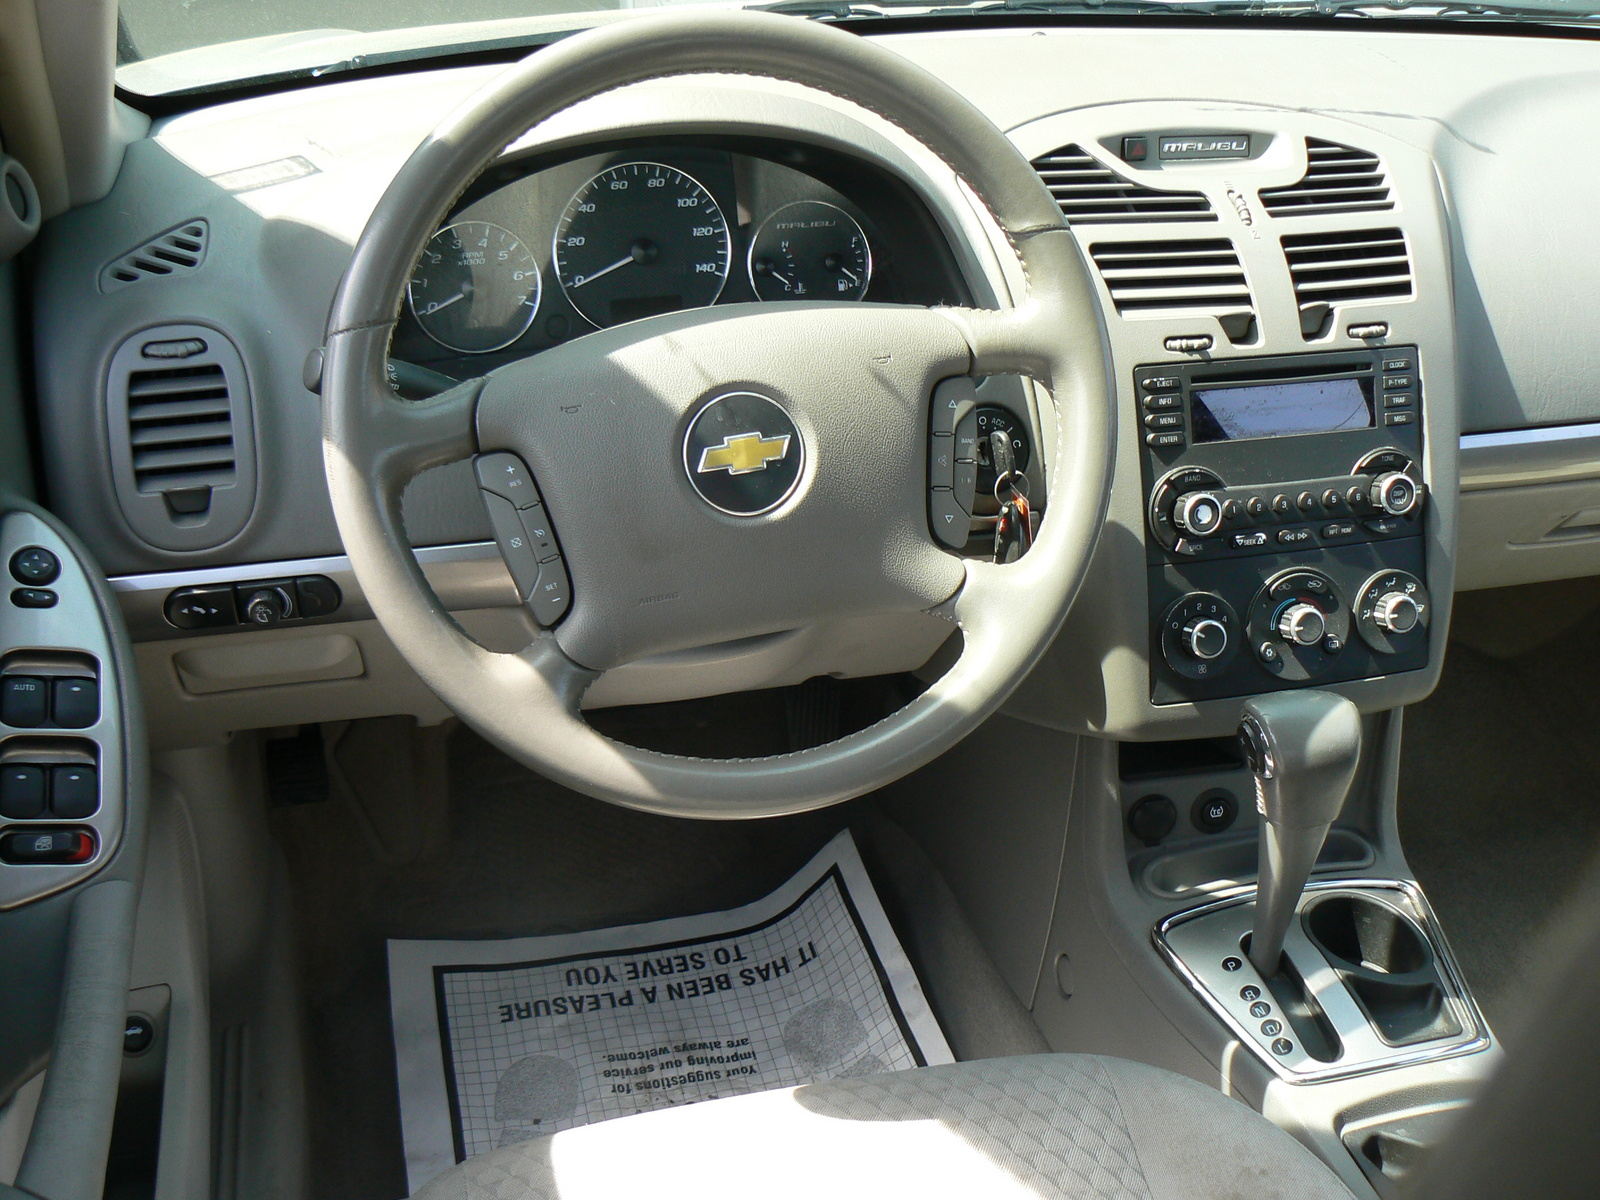 2014 chevy malibu lt timing belt or timing chain autos post